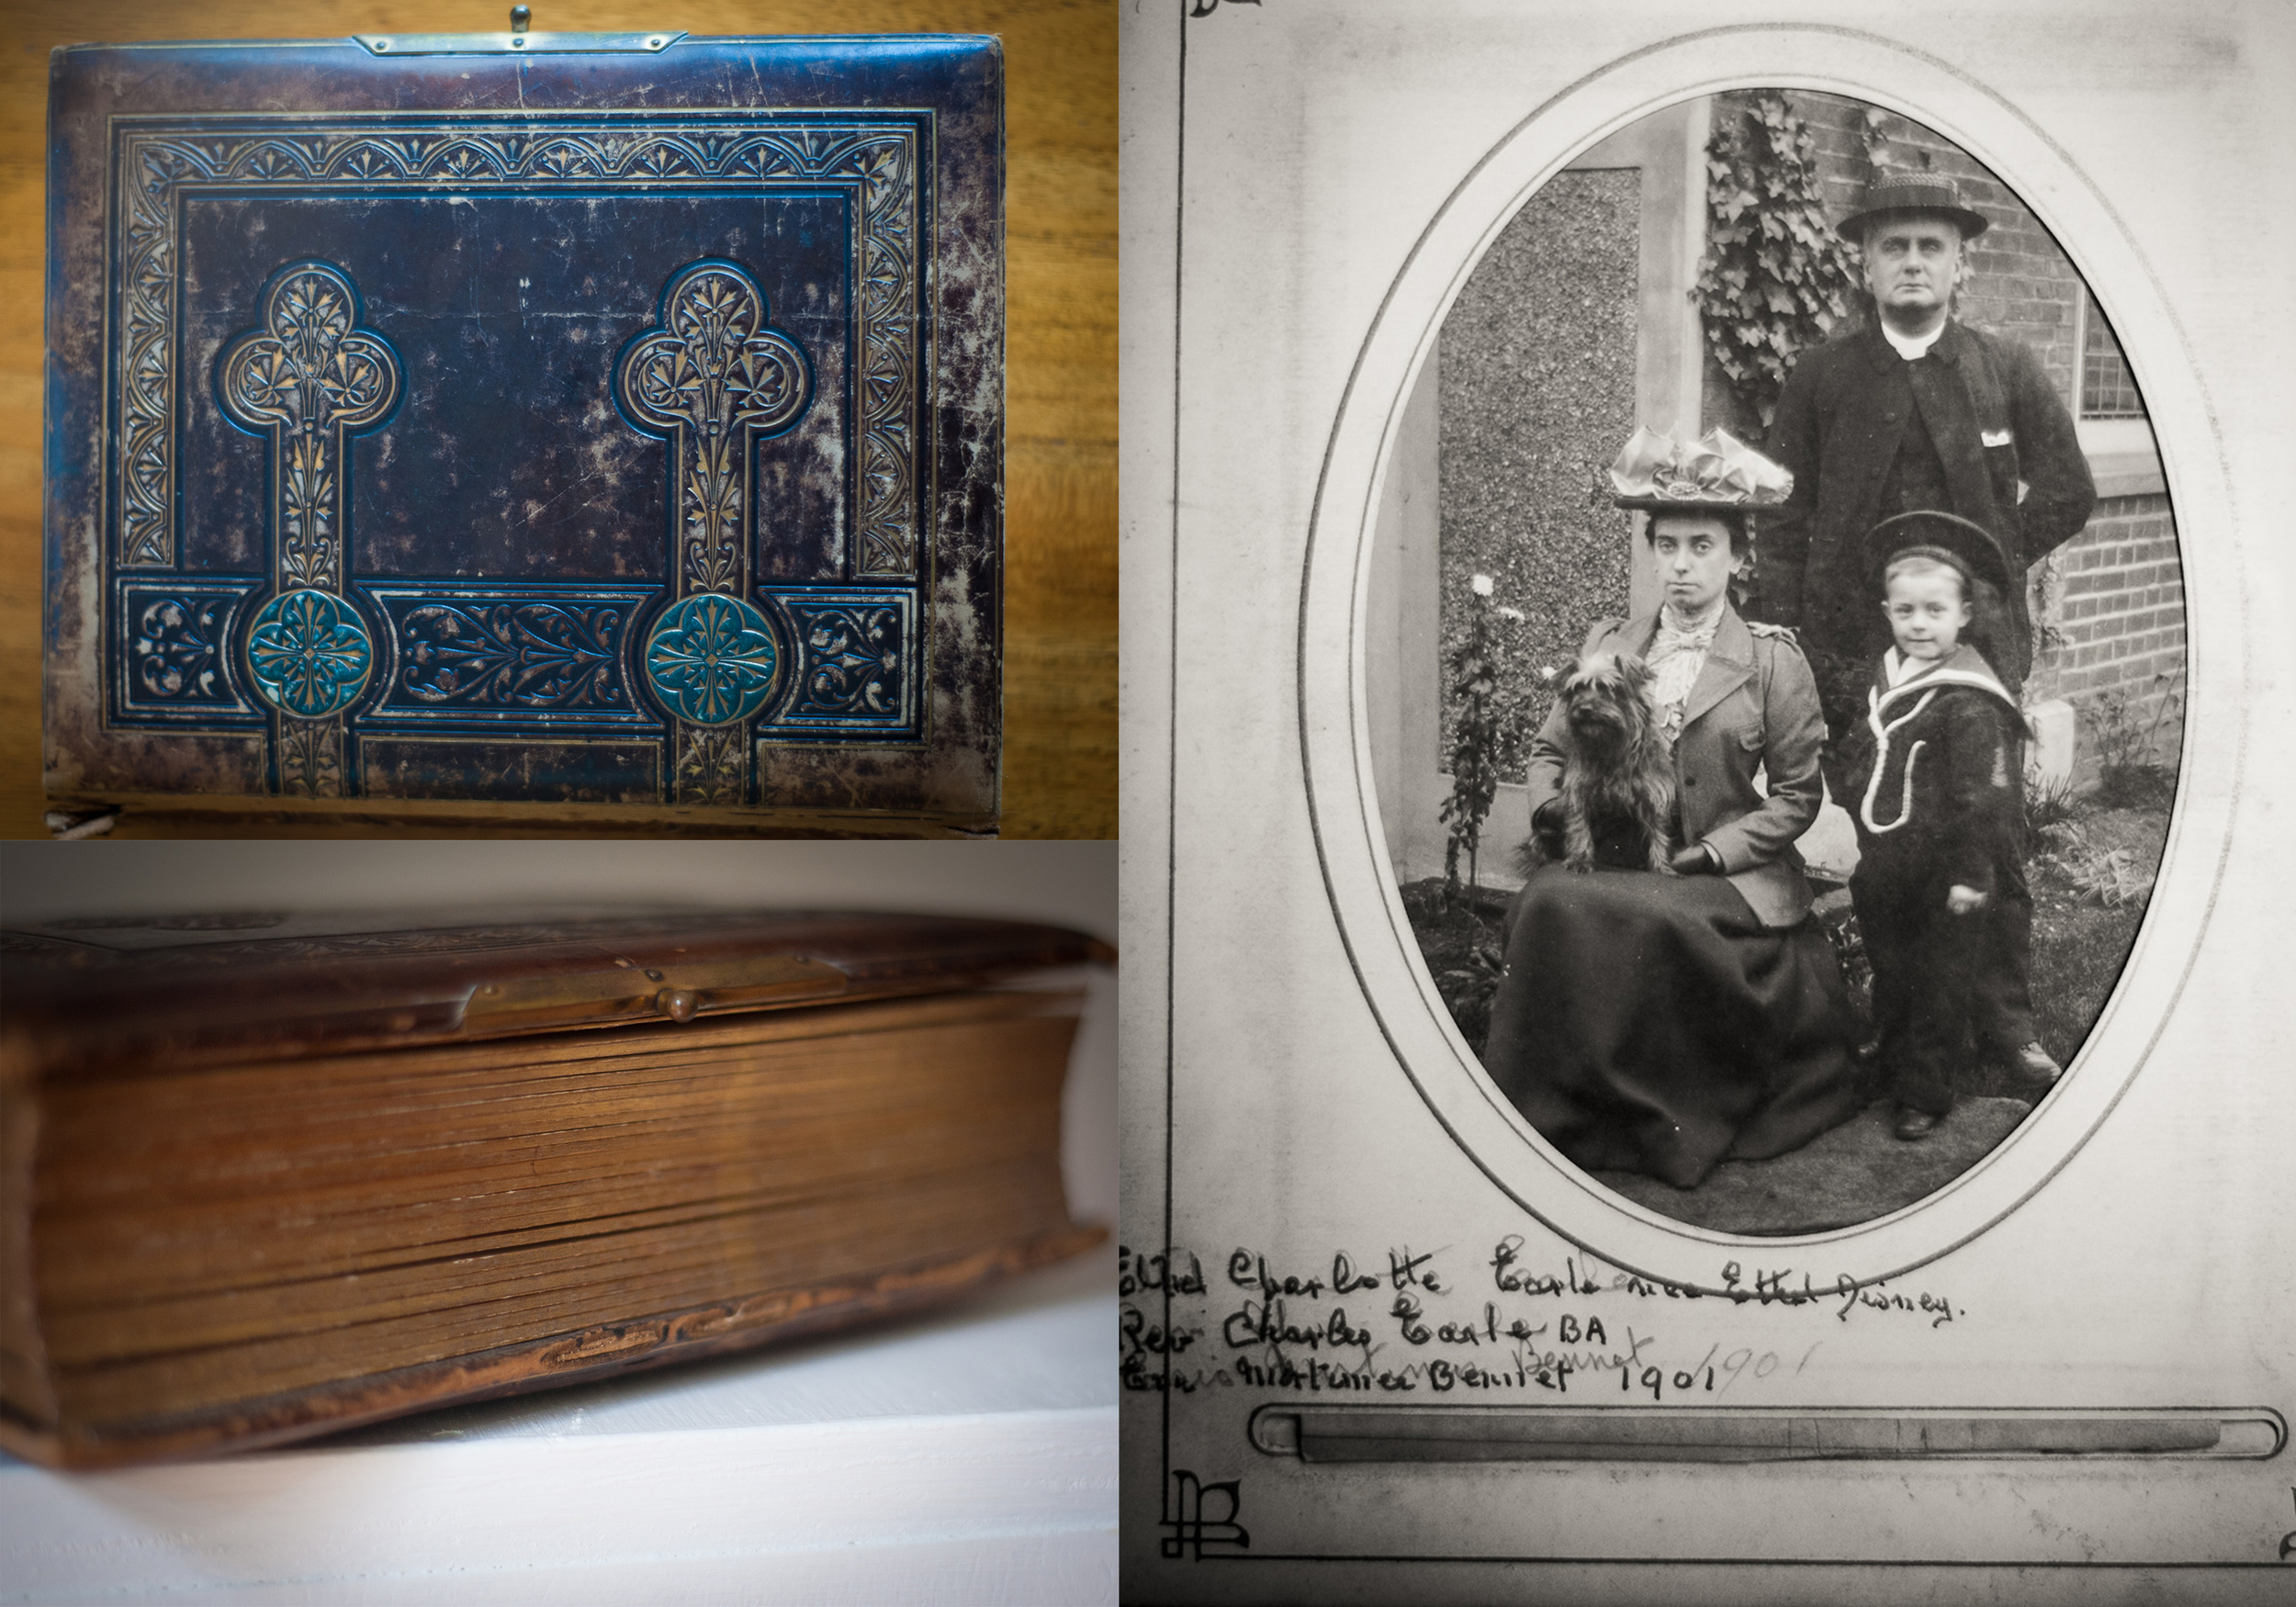 The heirlom photographic album - Victorian style and inside is my Grandfather with his cousin and husband who brought him up.  They look stern in this image but  apparently they weren't like that at all.